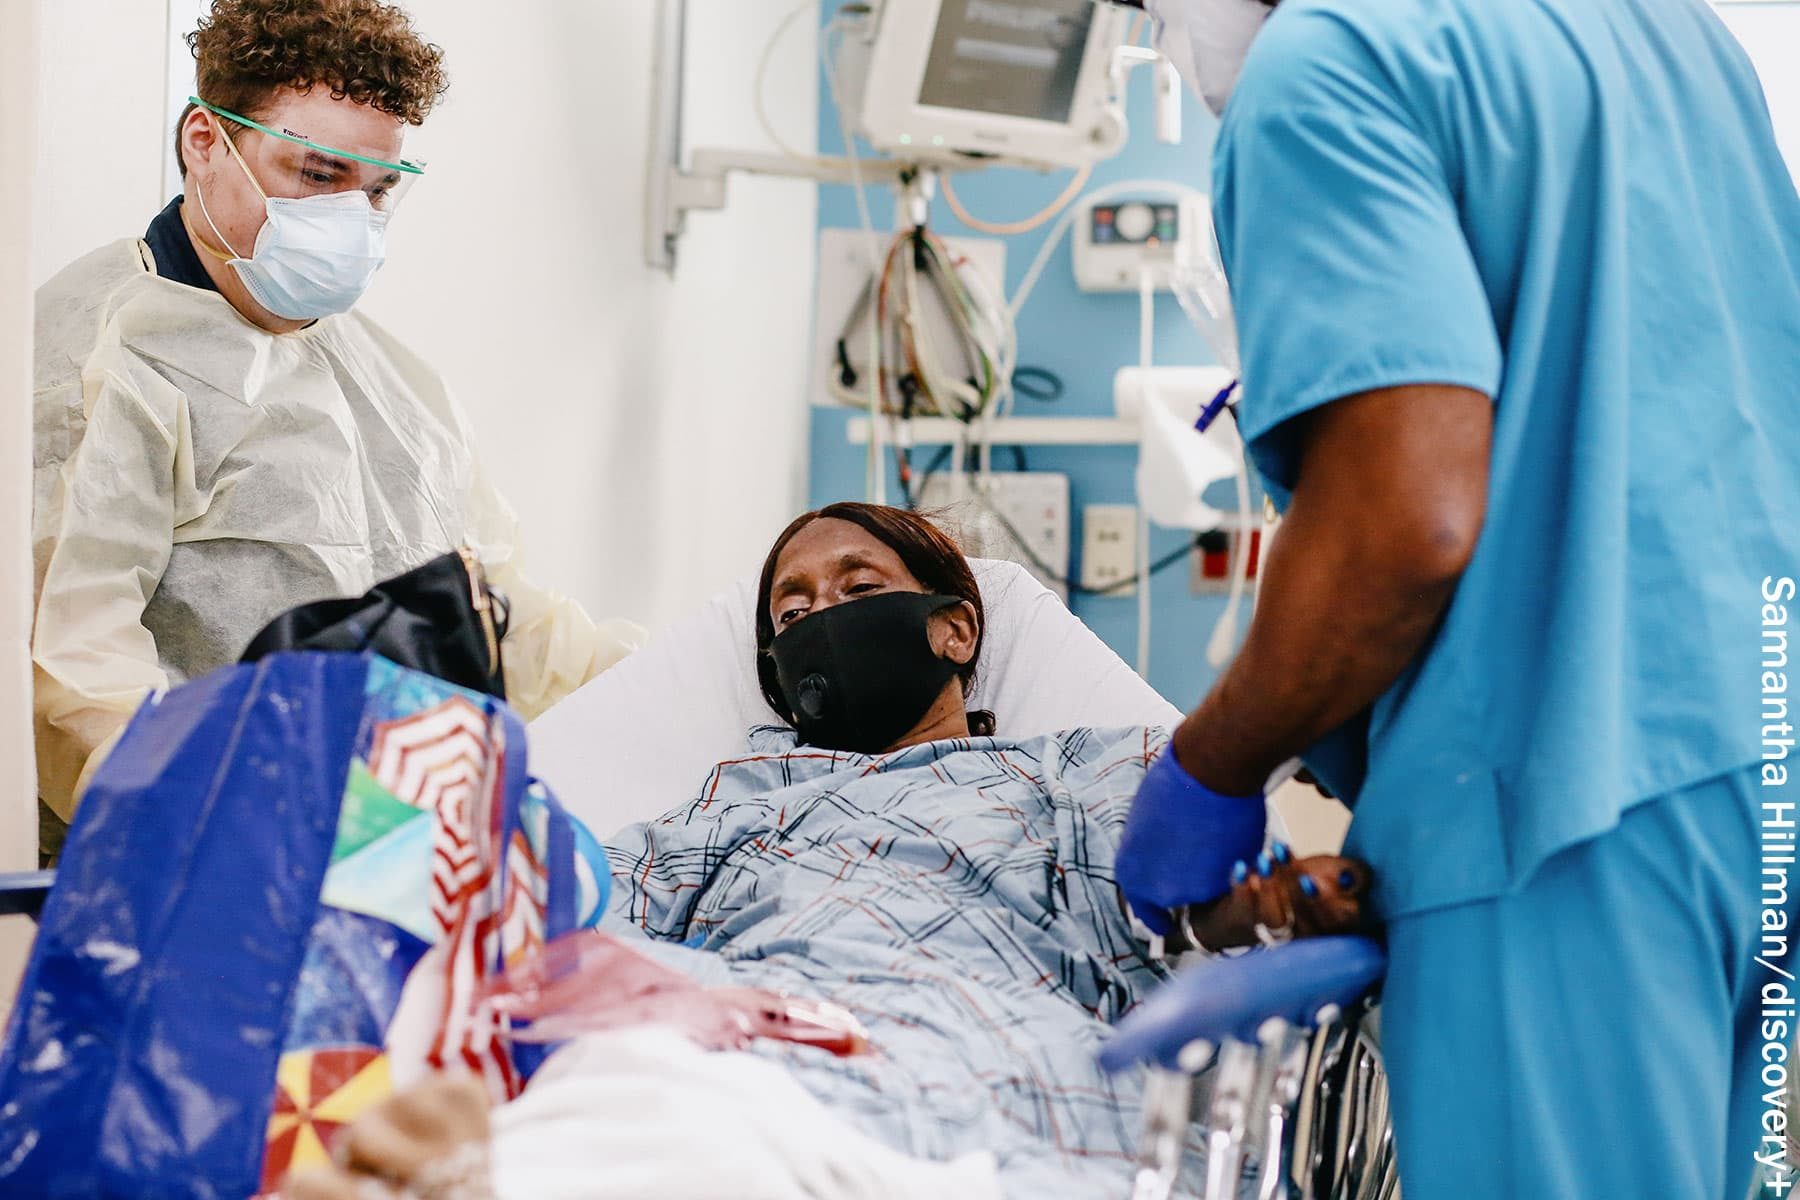 Film Shows How One Hospital Battled the Pandemic